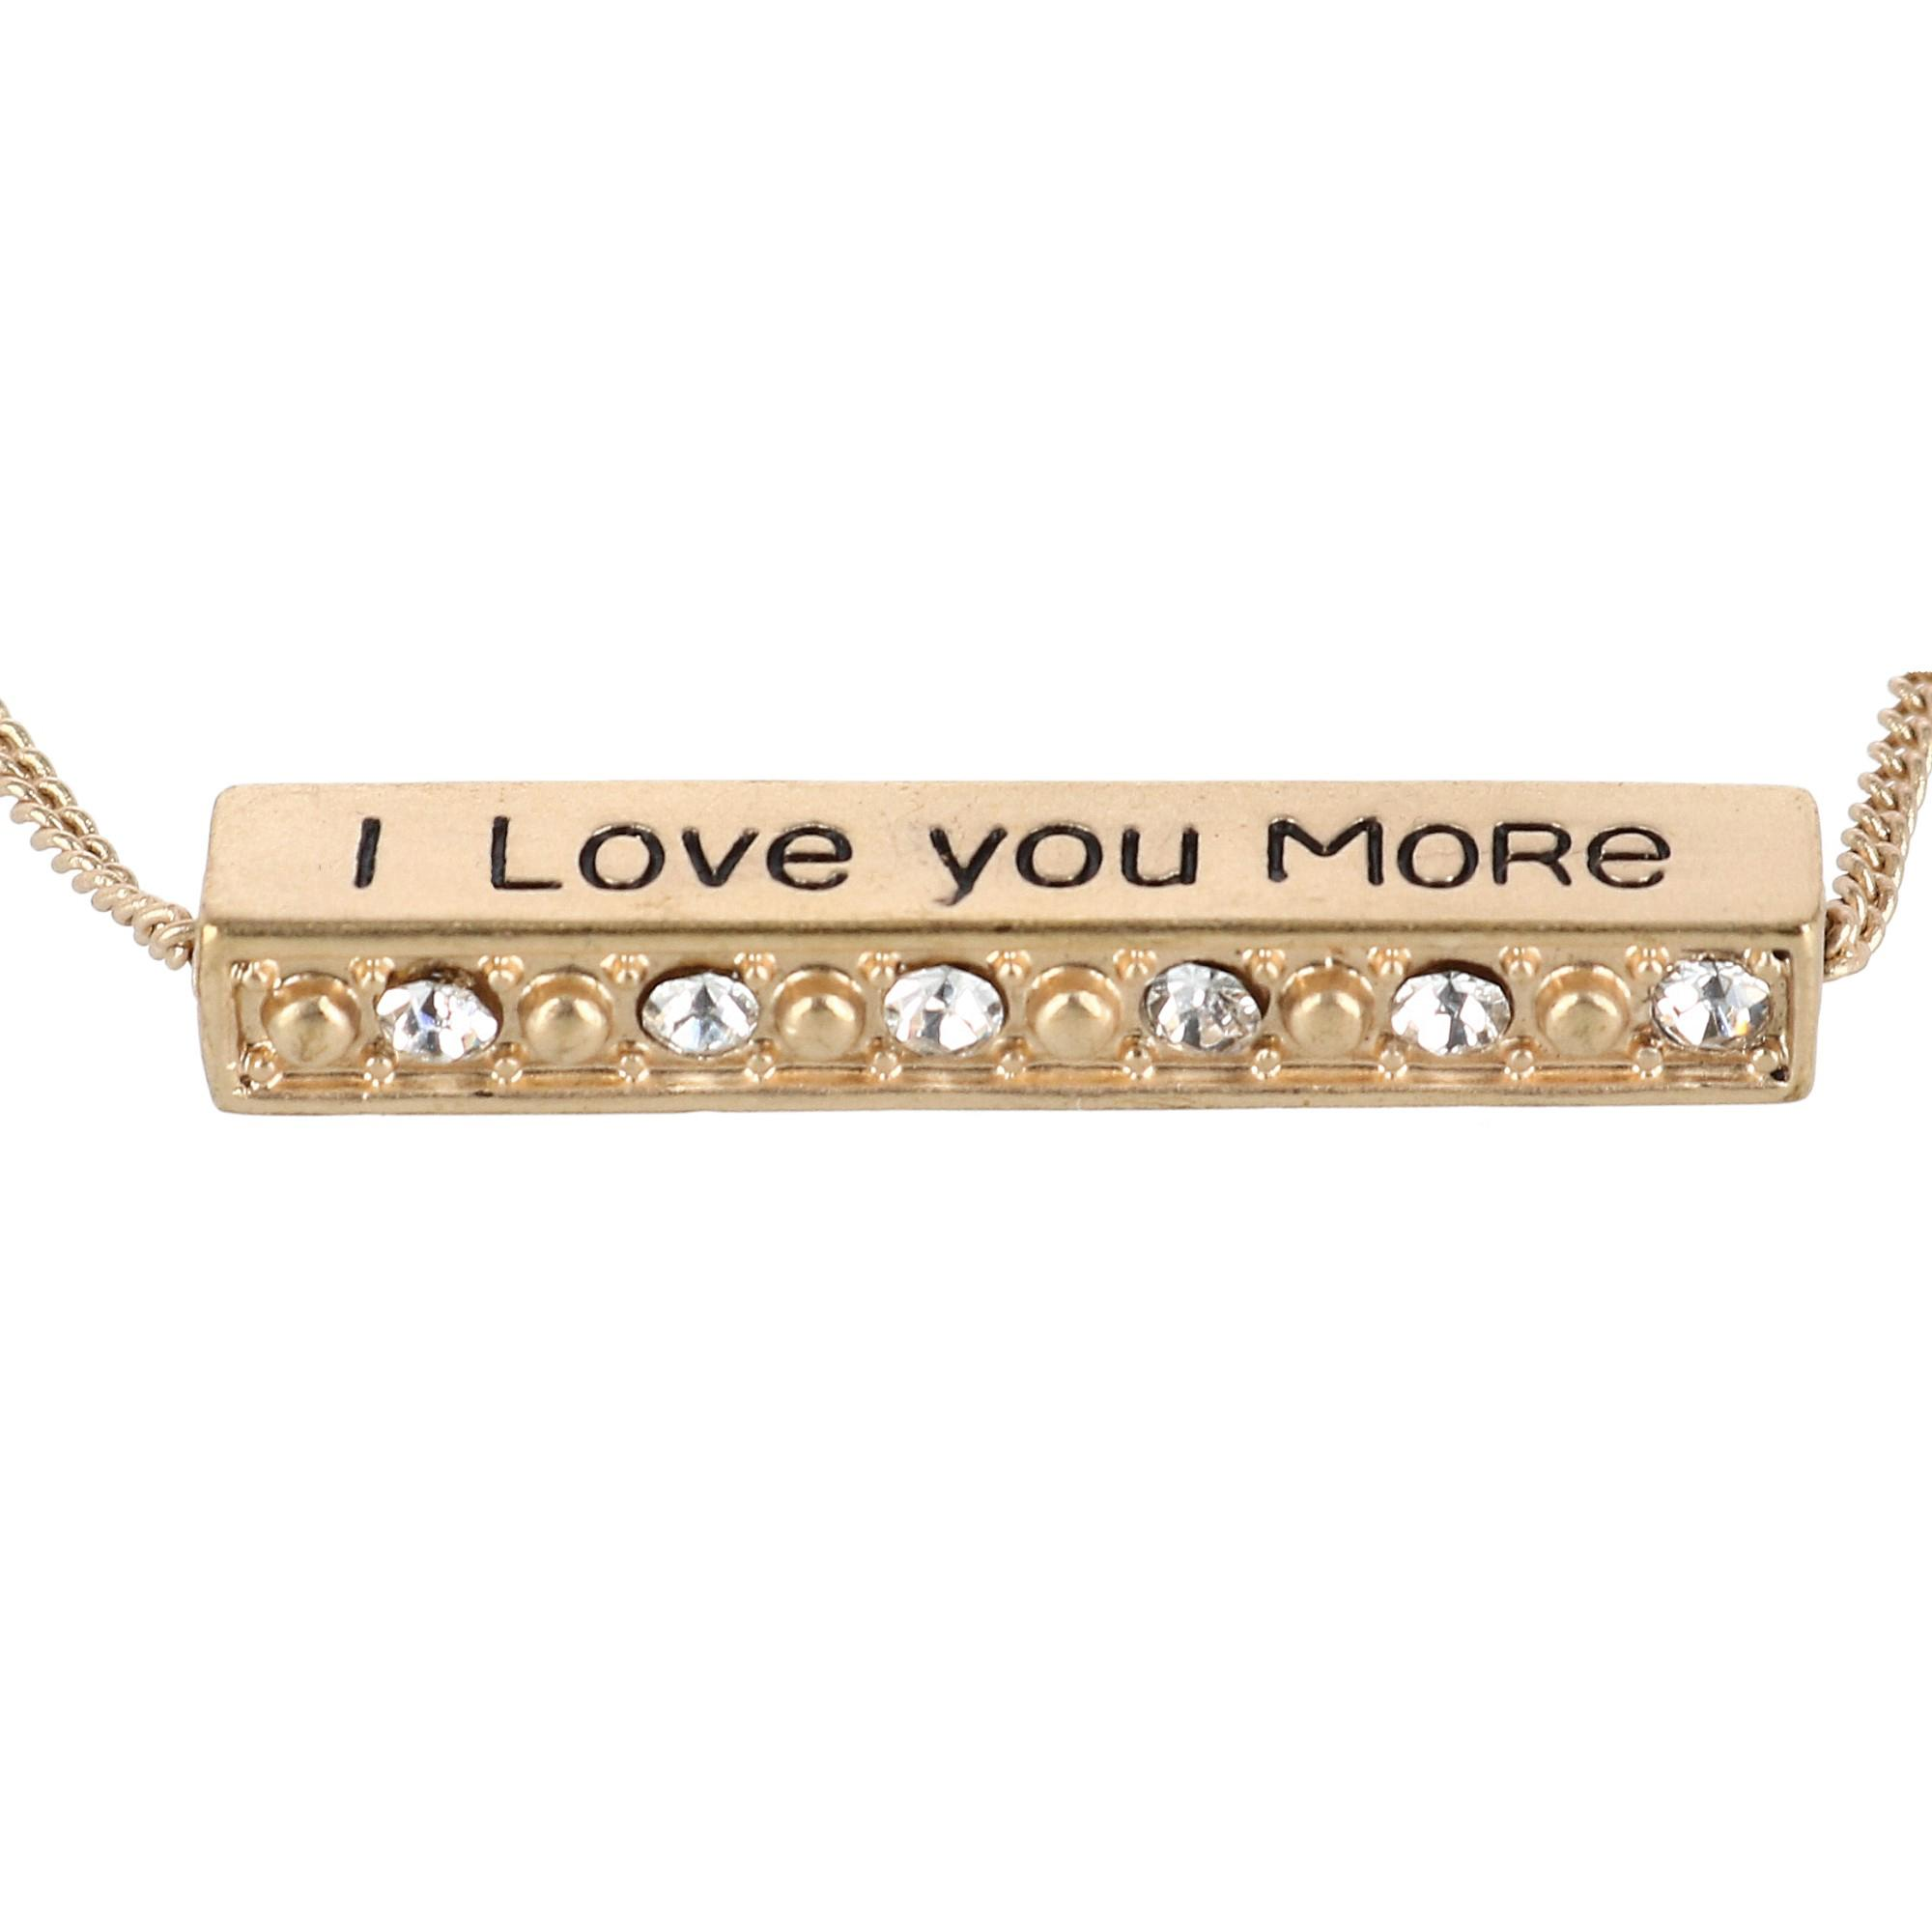 Accessorize Me I Love You More Bar Pendant Necklace with Rhinestones - image 2 of 5